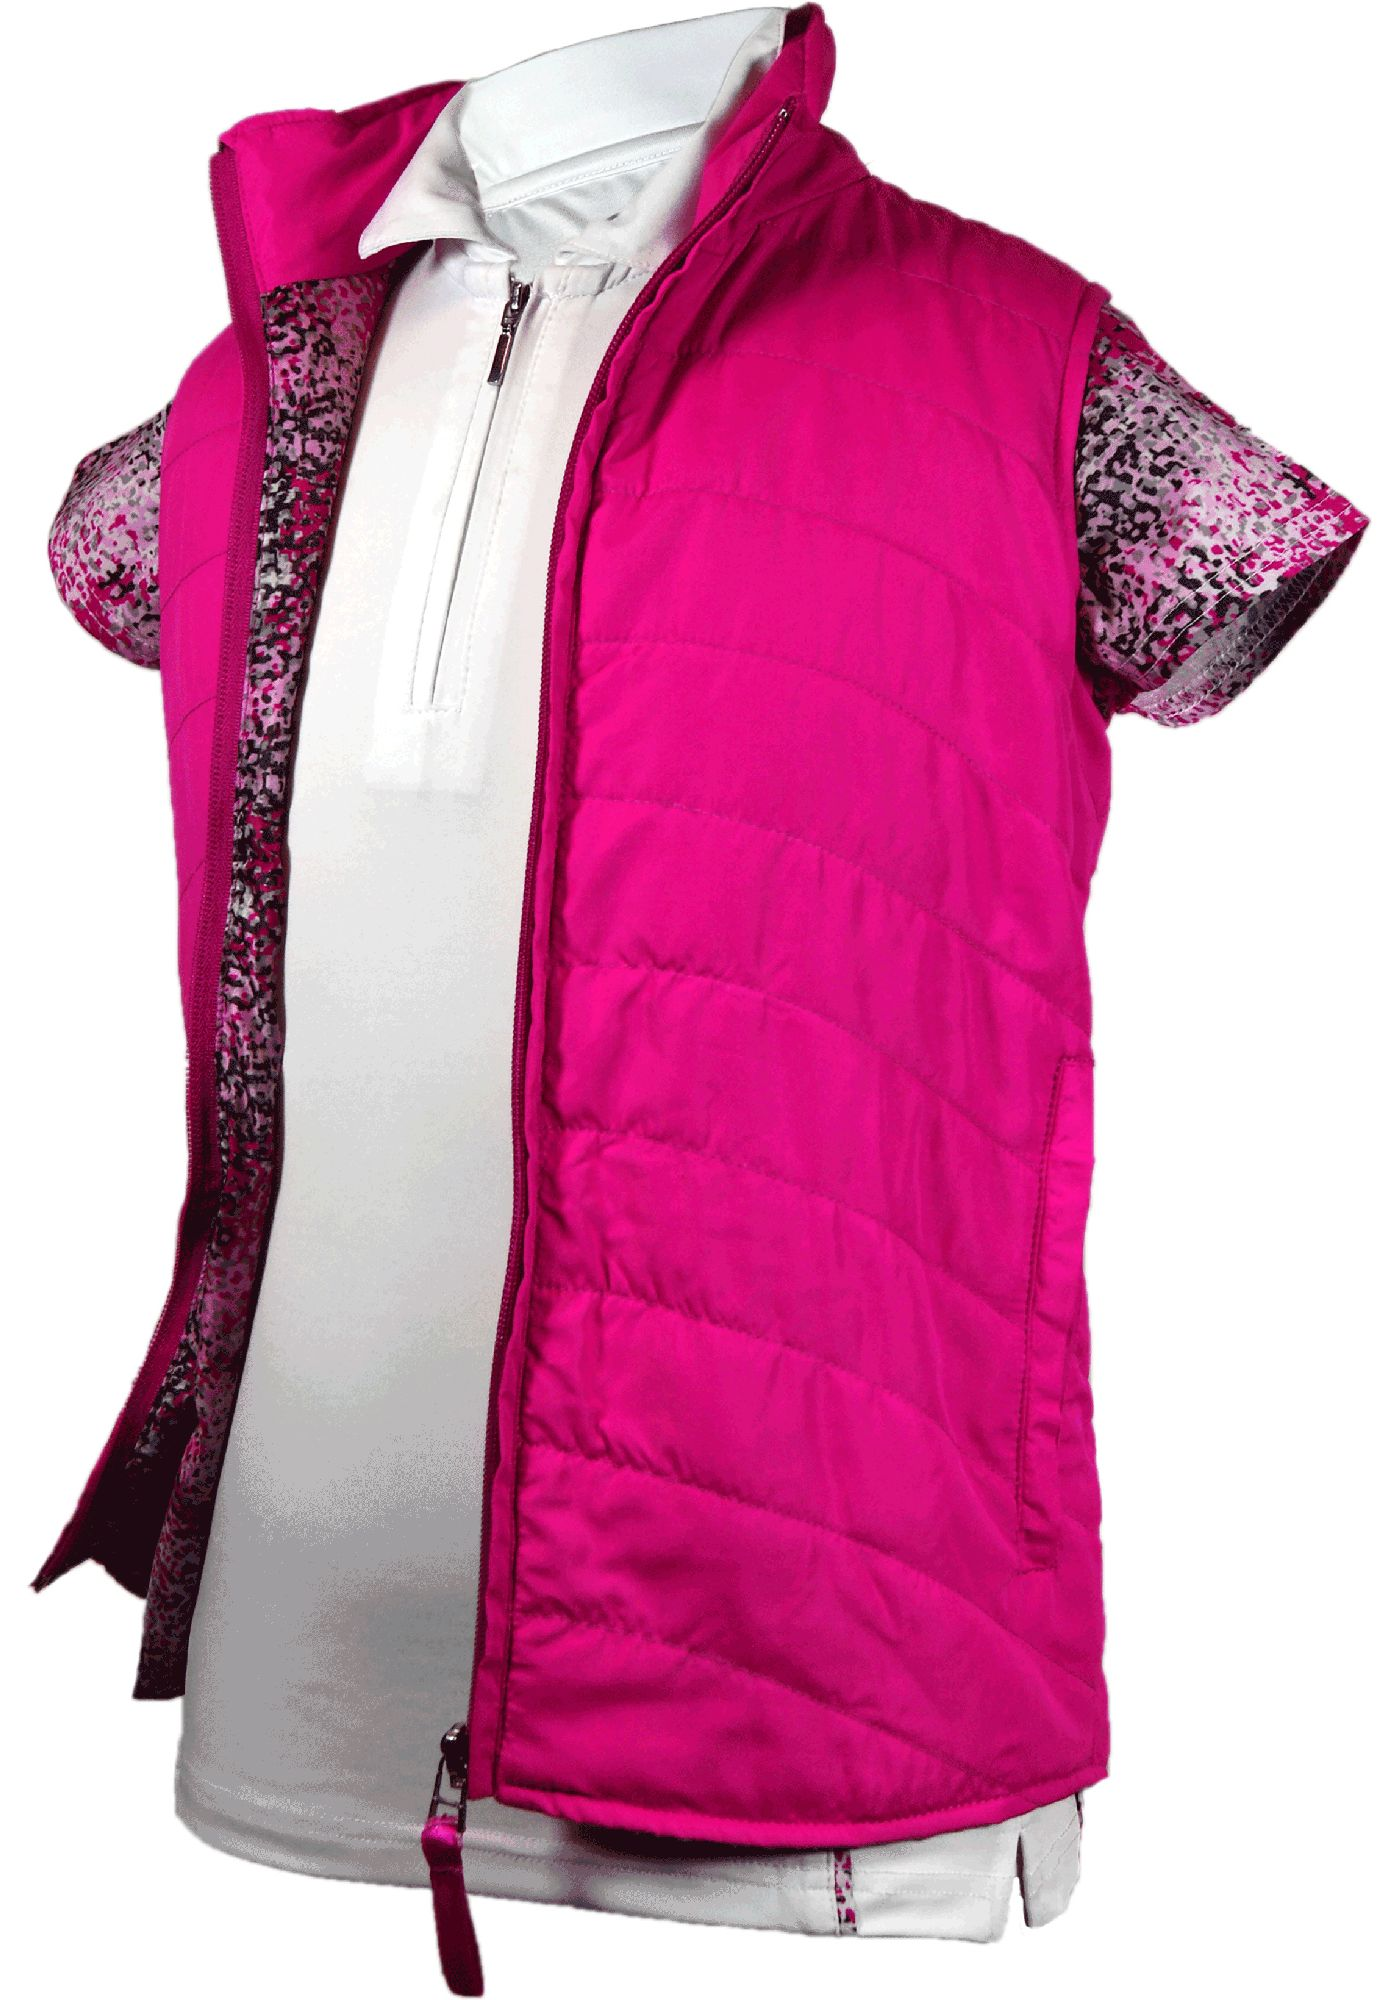 Garb Girls' Staci Golf Vest